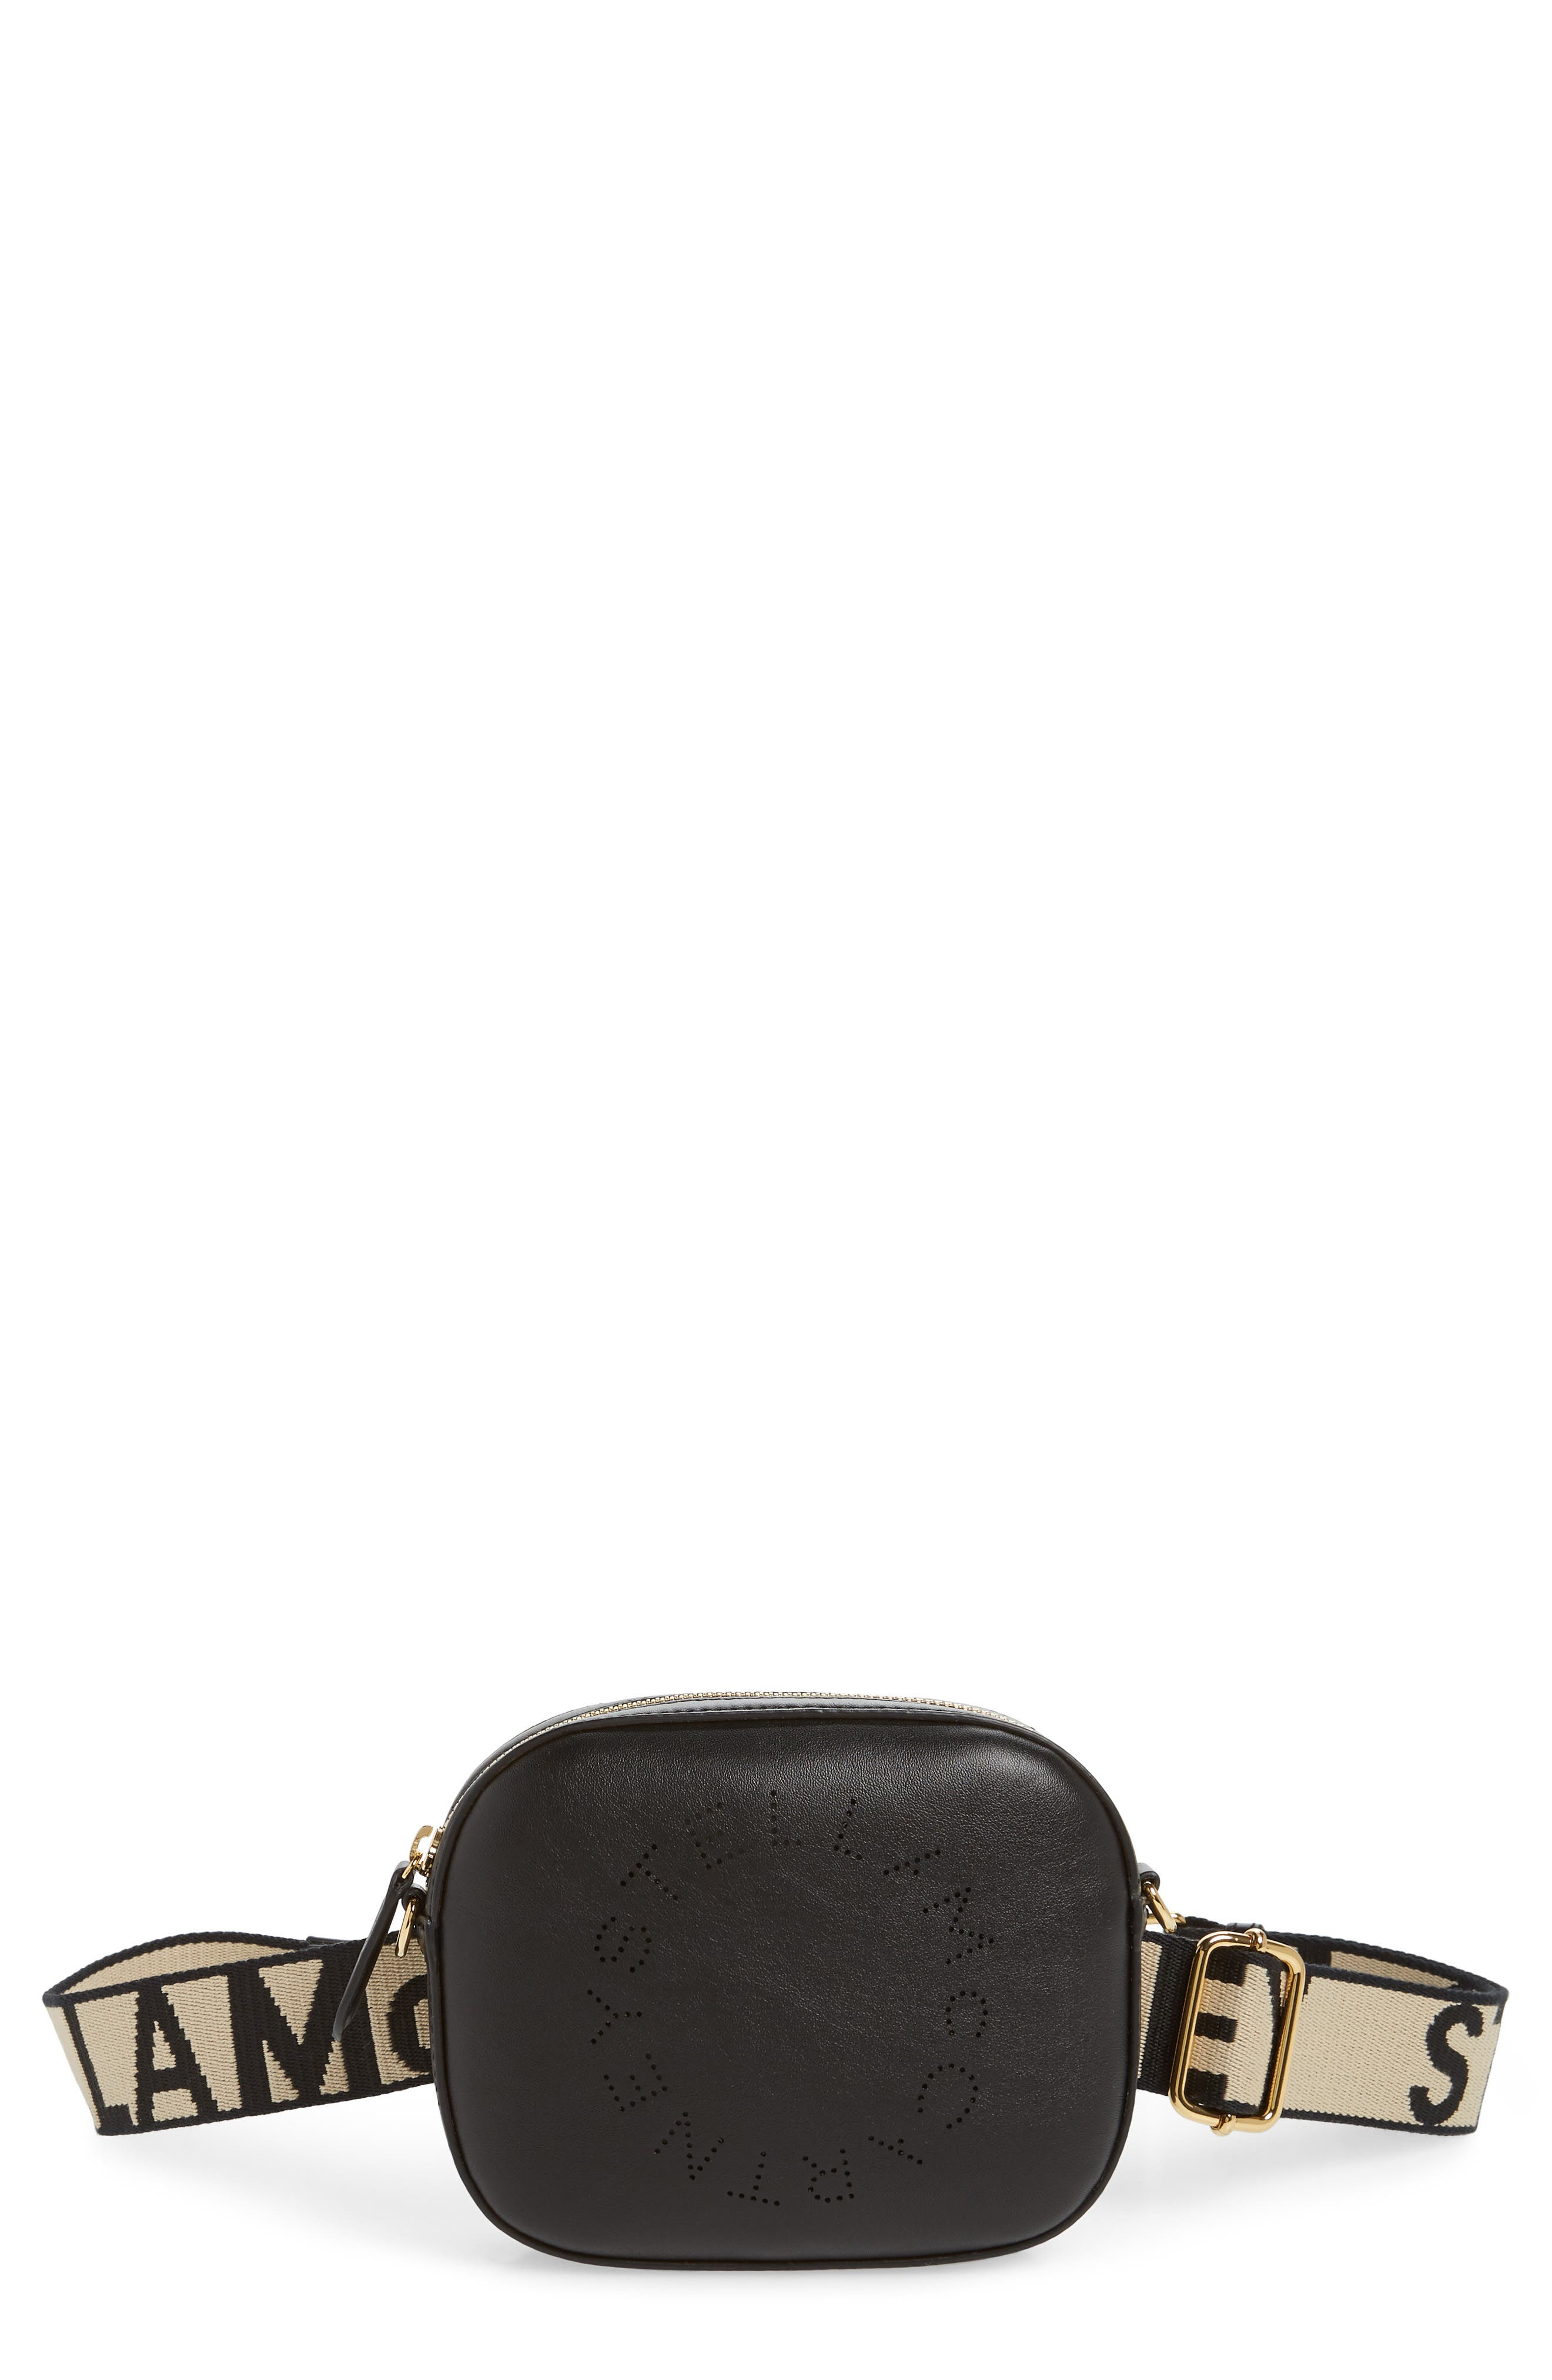 Stella Mccartney Perforated Logo Convertible Faux Leather Belt Bag - Black